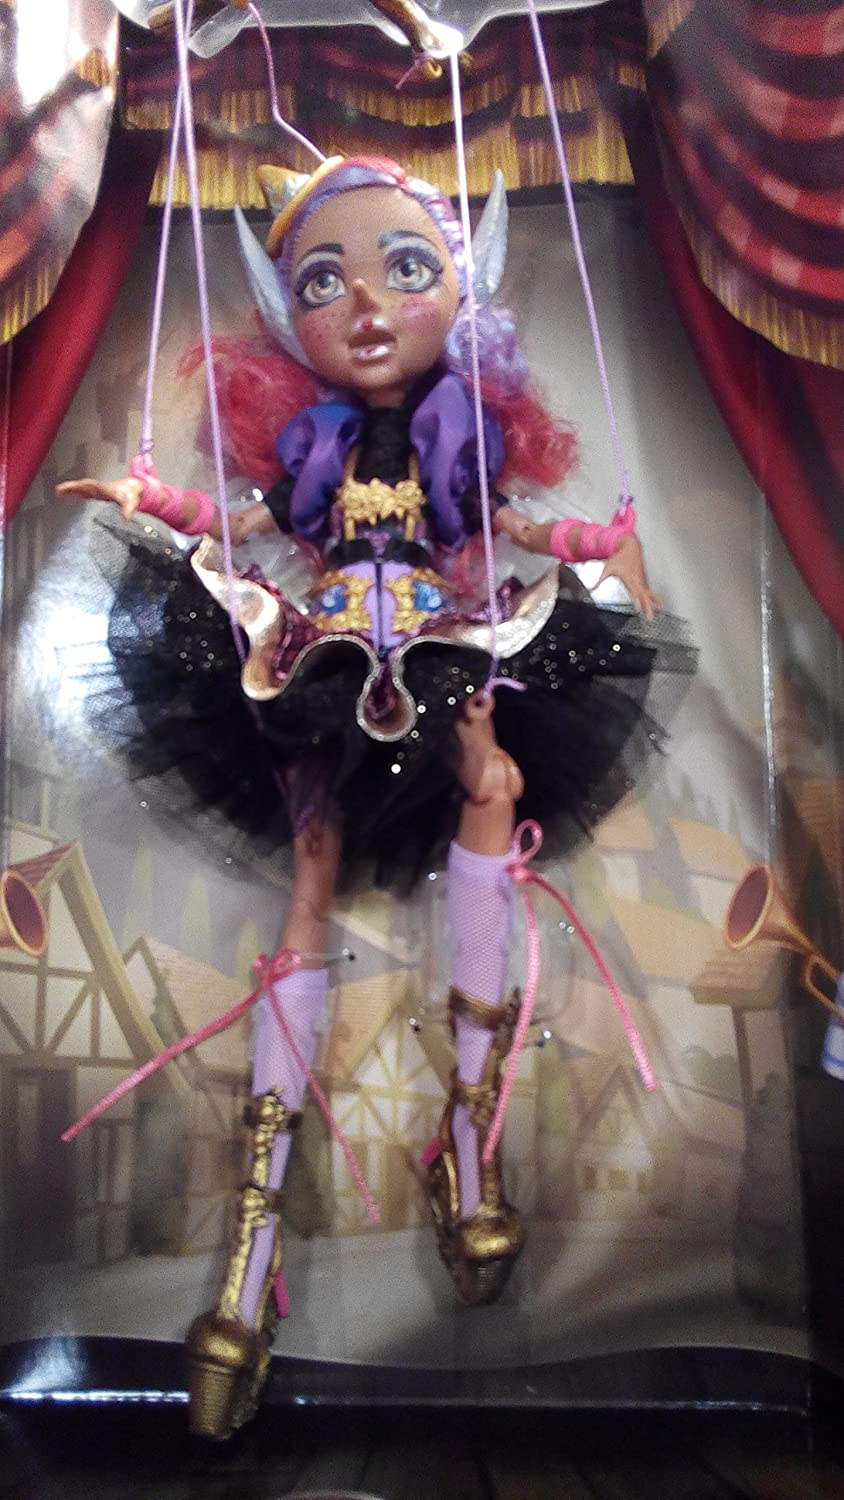 2016 SD COMIC CON Mattel Exclusive Ever After High Cedar Wood Marionette Doll